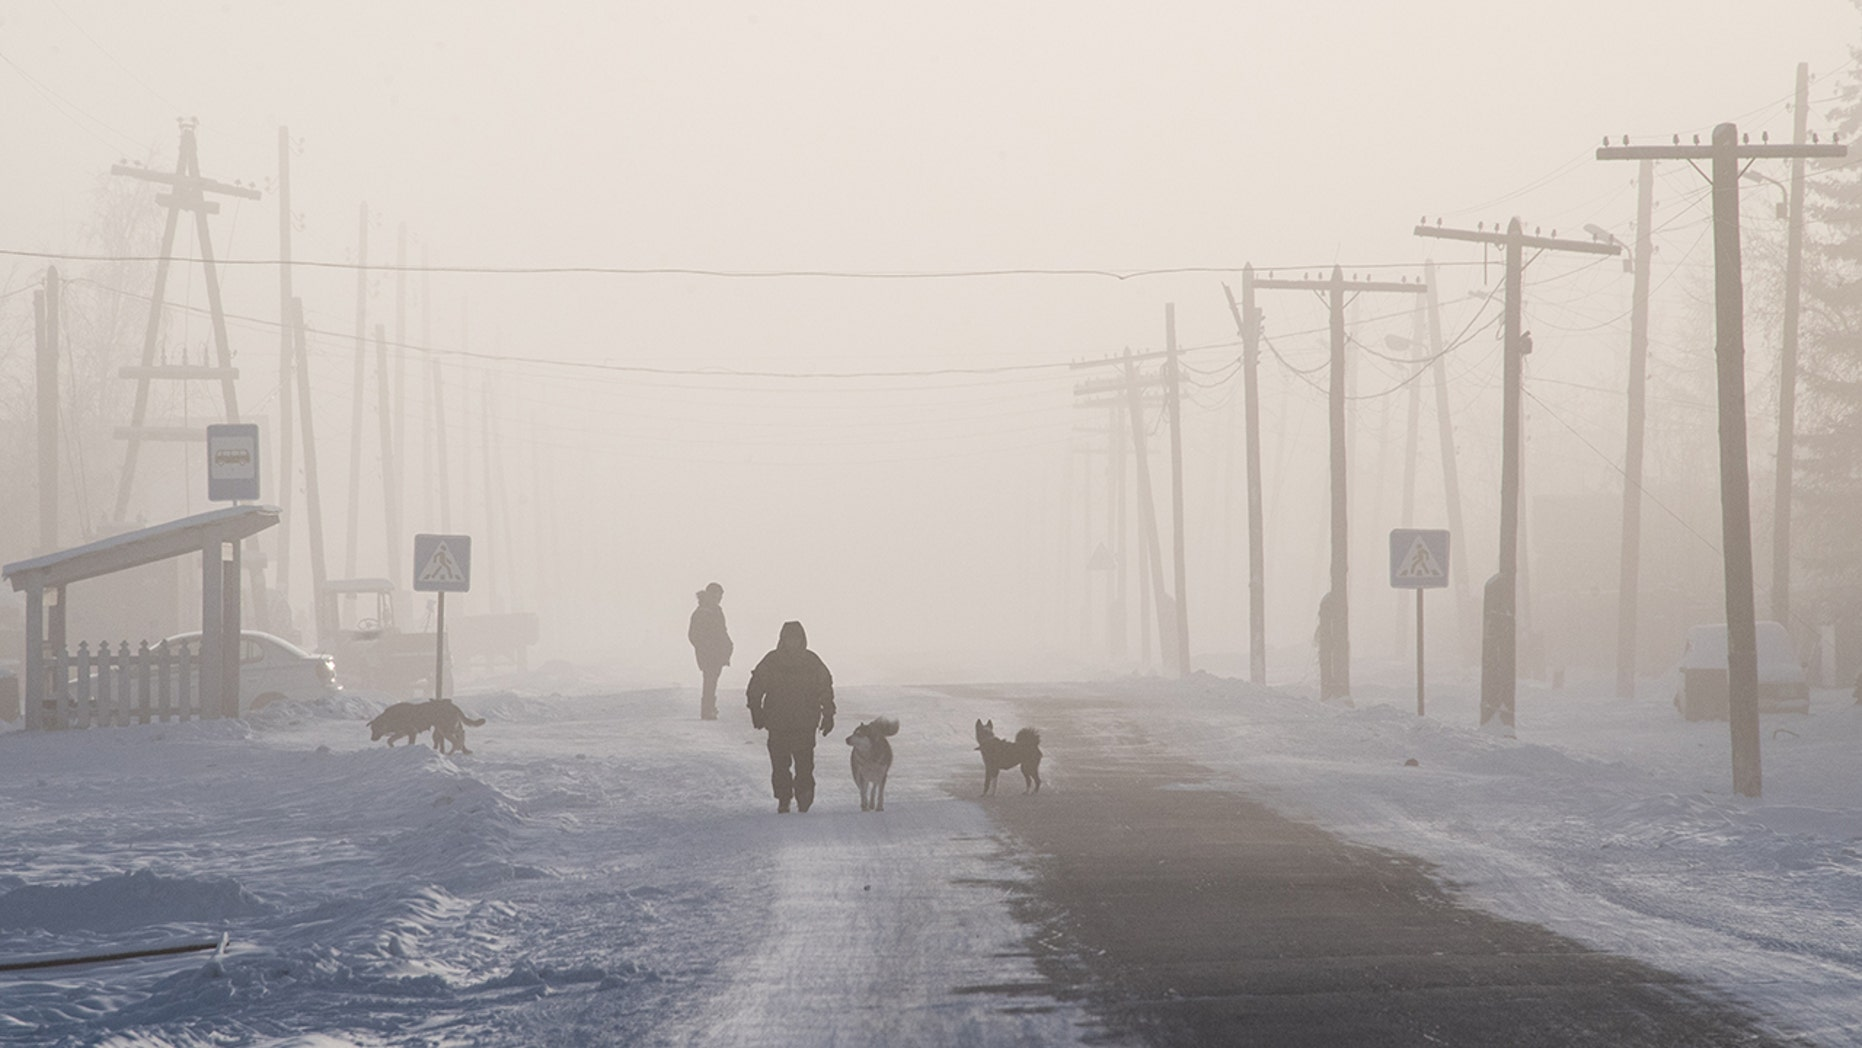 Westlake Legal Group Yakutsk-GettyImages-1065717156 'Disaster worse than Chernobyl' looms as ancient anthrax spores could be blasted into the sky by 'frozen methane bombs', scientists warn The Sun fox-news/science/planet-earth/doomsday fox-news/science/planet-earth/climate fnc/science fnc Digital Technology and Science Reporter Charlotte Edwards article 369fe434-0e4a-56de-87a0-39f7a7e27252